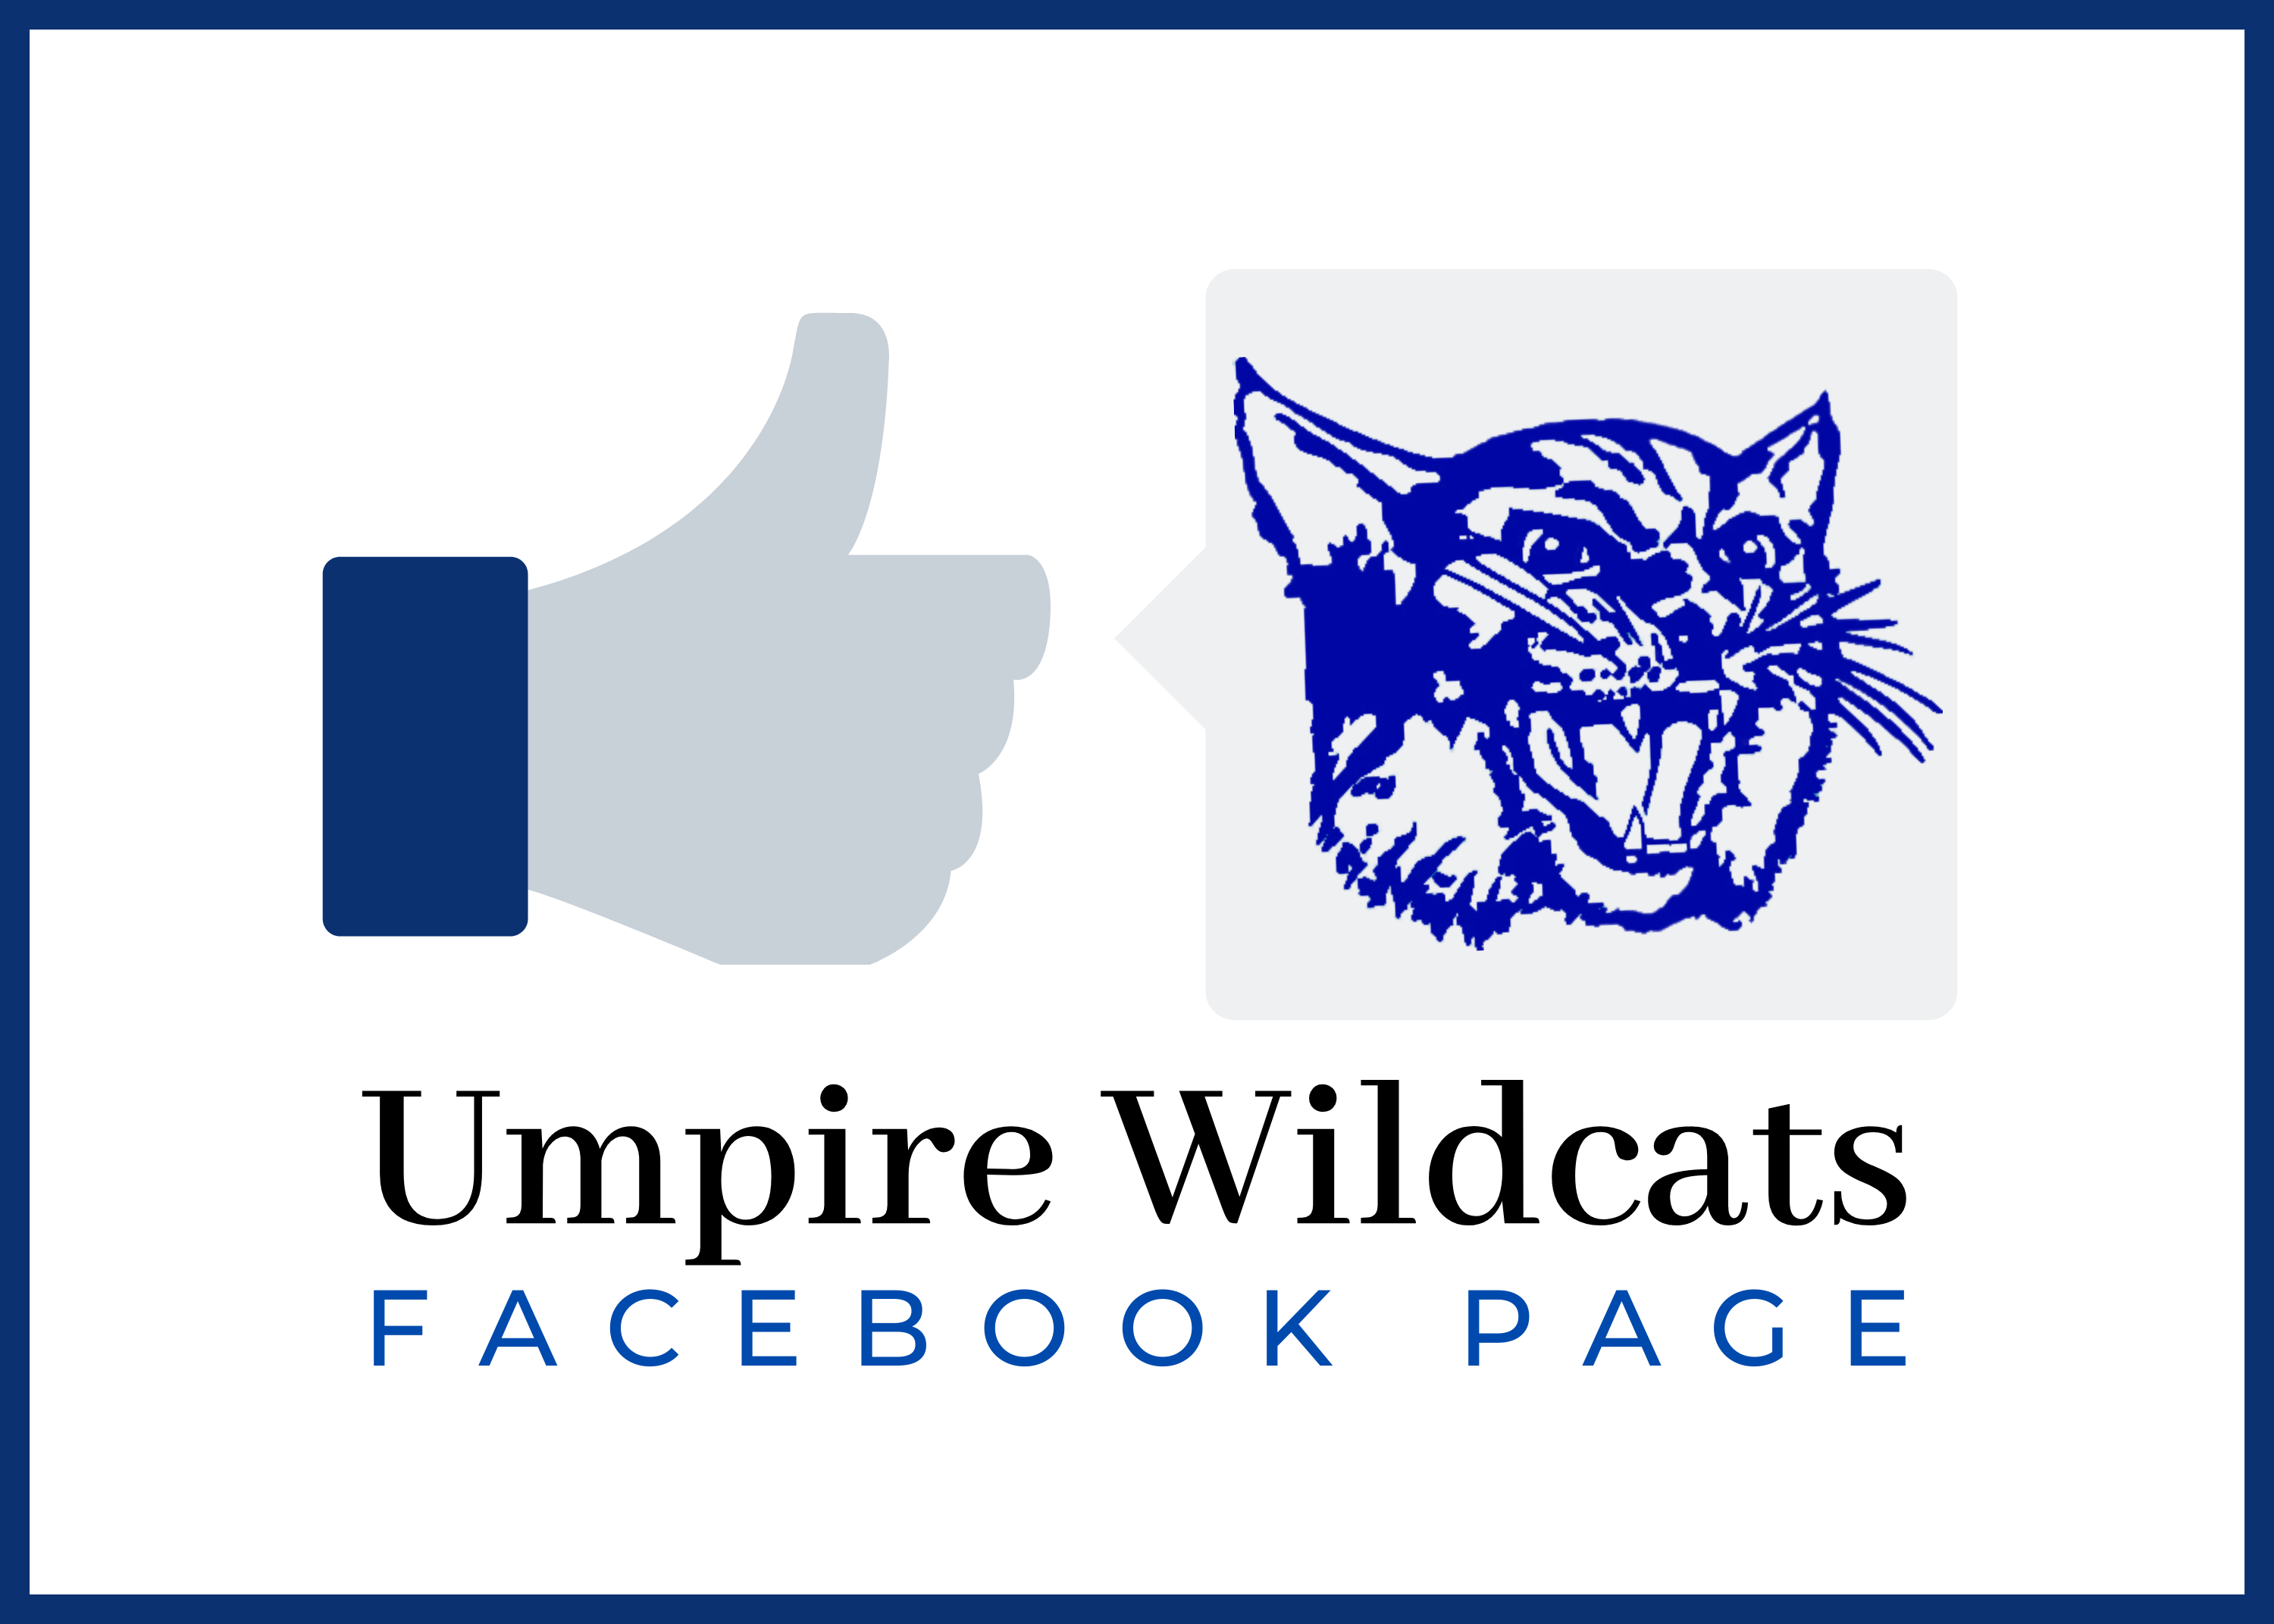 photo of umpire wildcats facebook page graphic